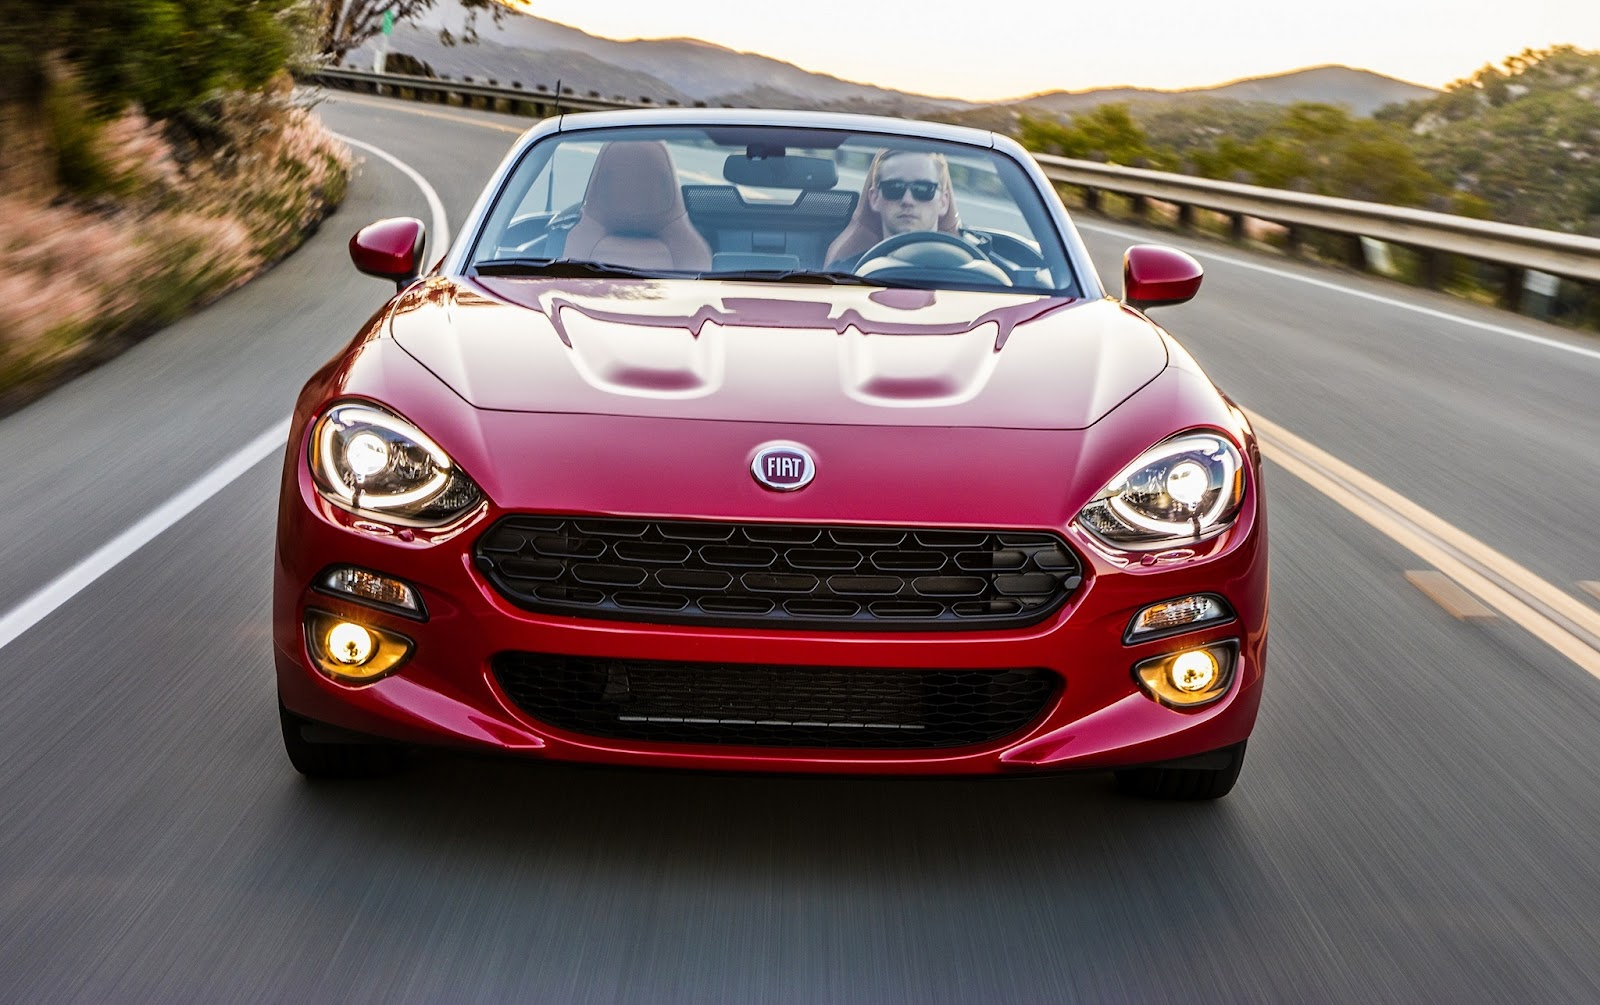 2018 fiat 124 spider model changes fiat 500 usa. Black Bedroom Furniture Sets. Home Design Ideas